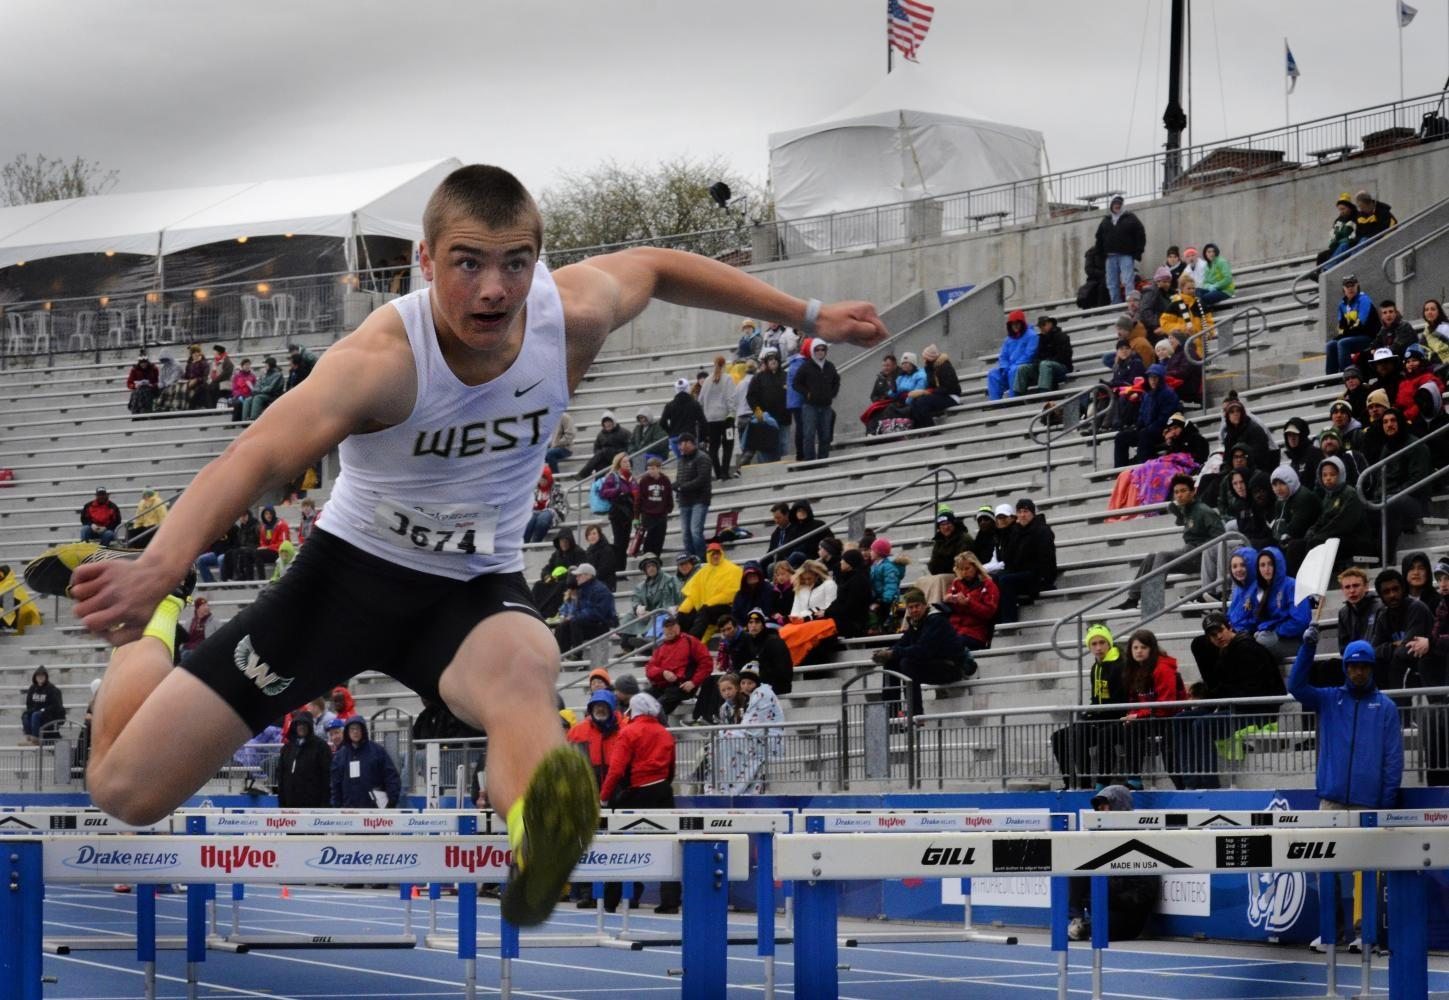 Cole Mabry '19 runs over a hurdle during boys shuttle hurdle relay on Saturday, May 29 at the Drake Relays. The West High boys placed ninth in the event.